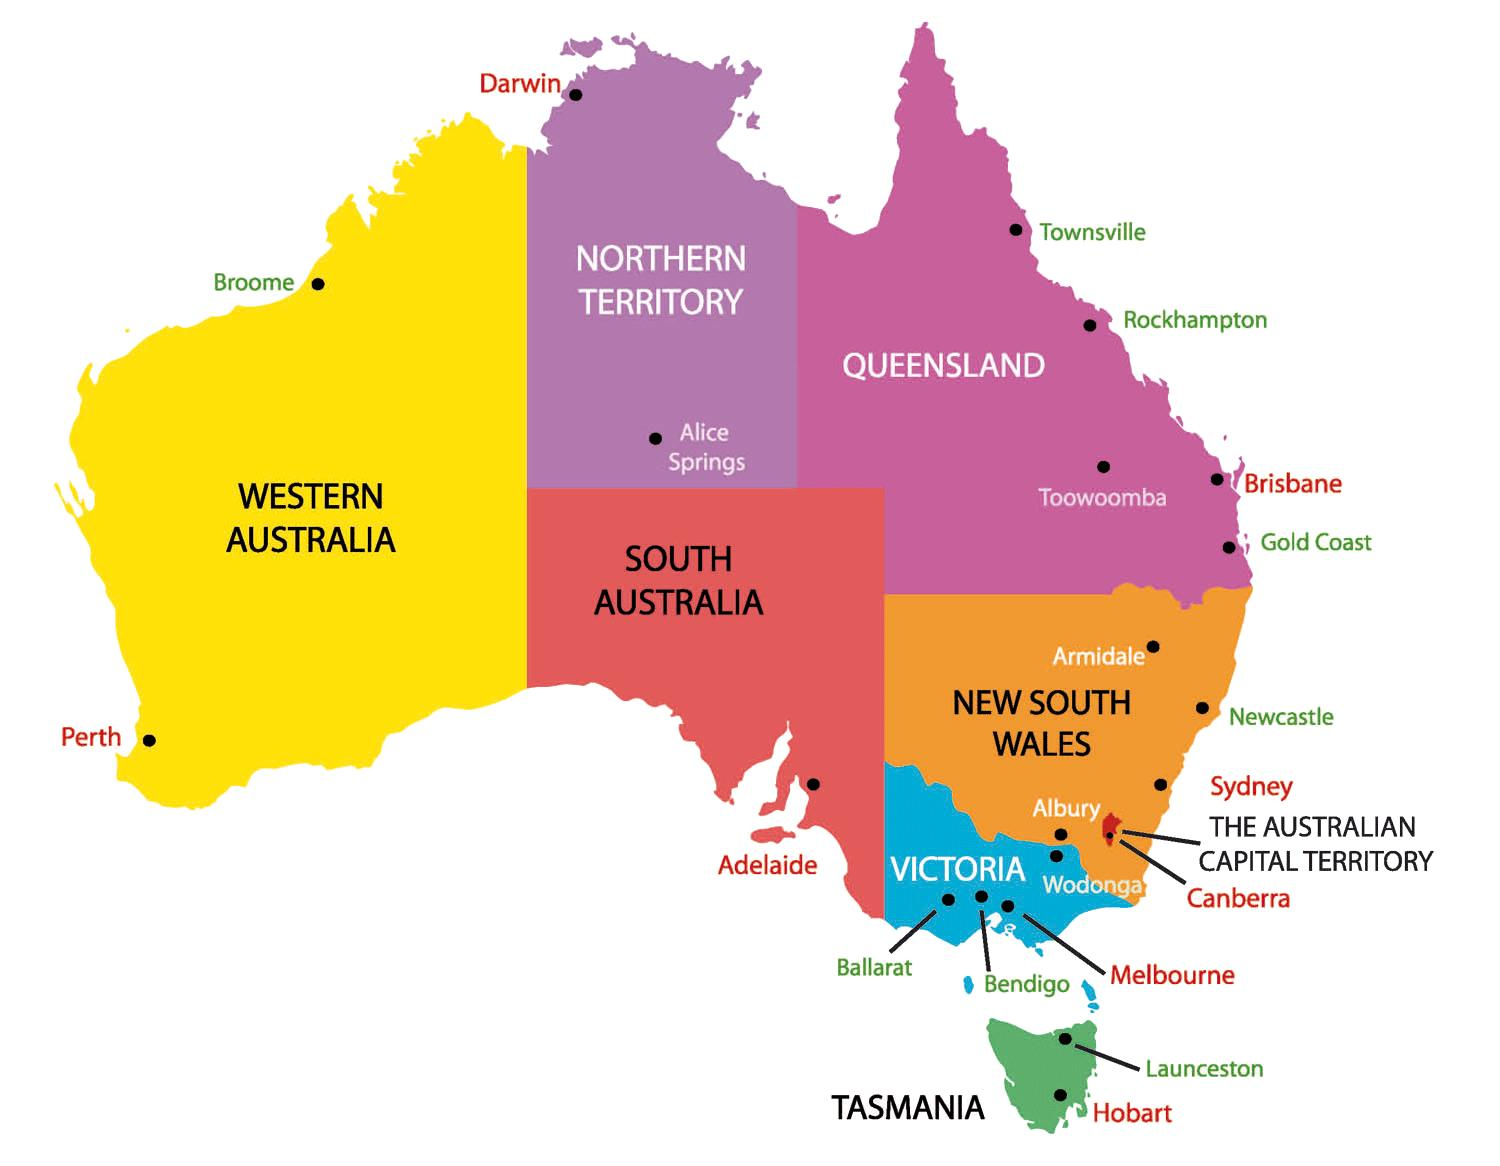 Australia Map States And Cities.Australia Map With States And Cities Map Of Australia With States